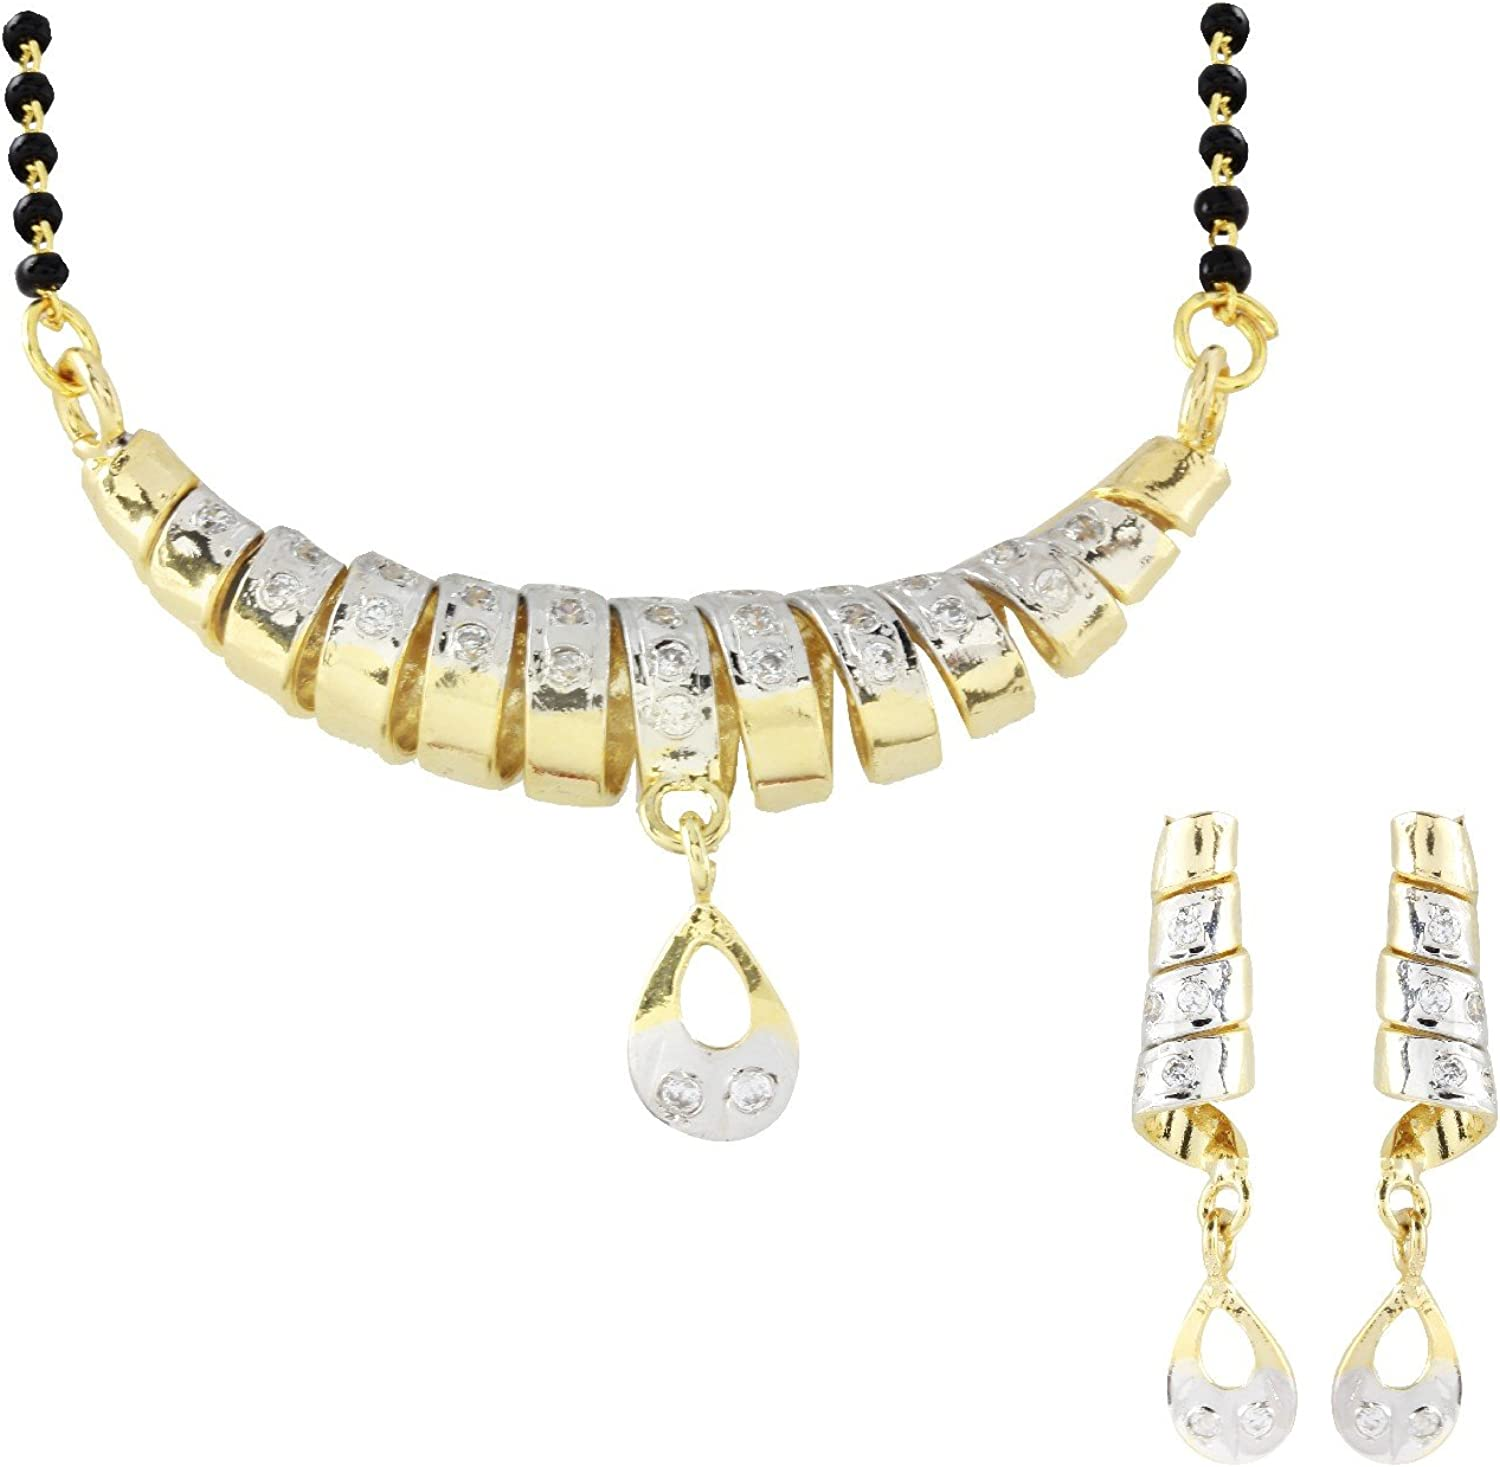 Efulgenz Indian Bollywood Ethnic Traditional Mangalsutra Pendant with Chain and Earrings Jewelry for Women